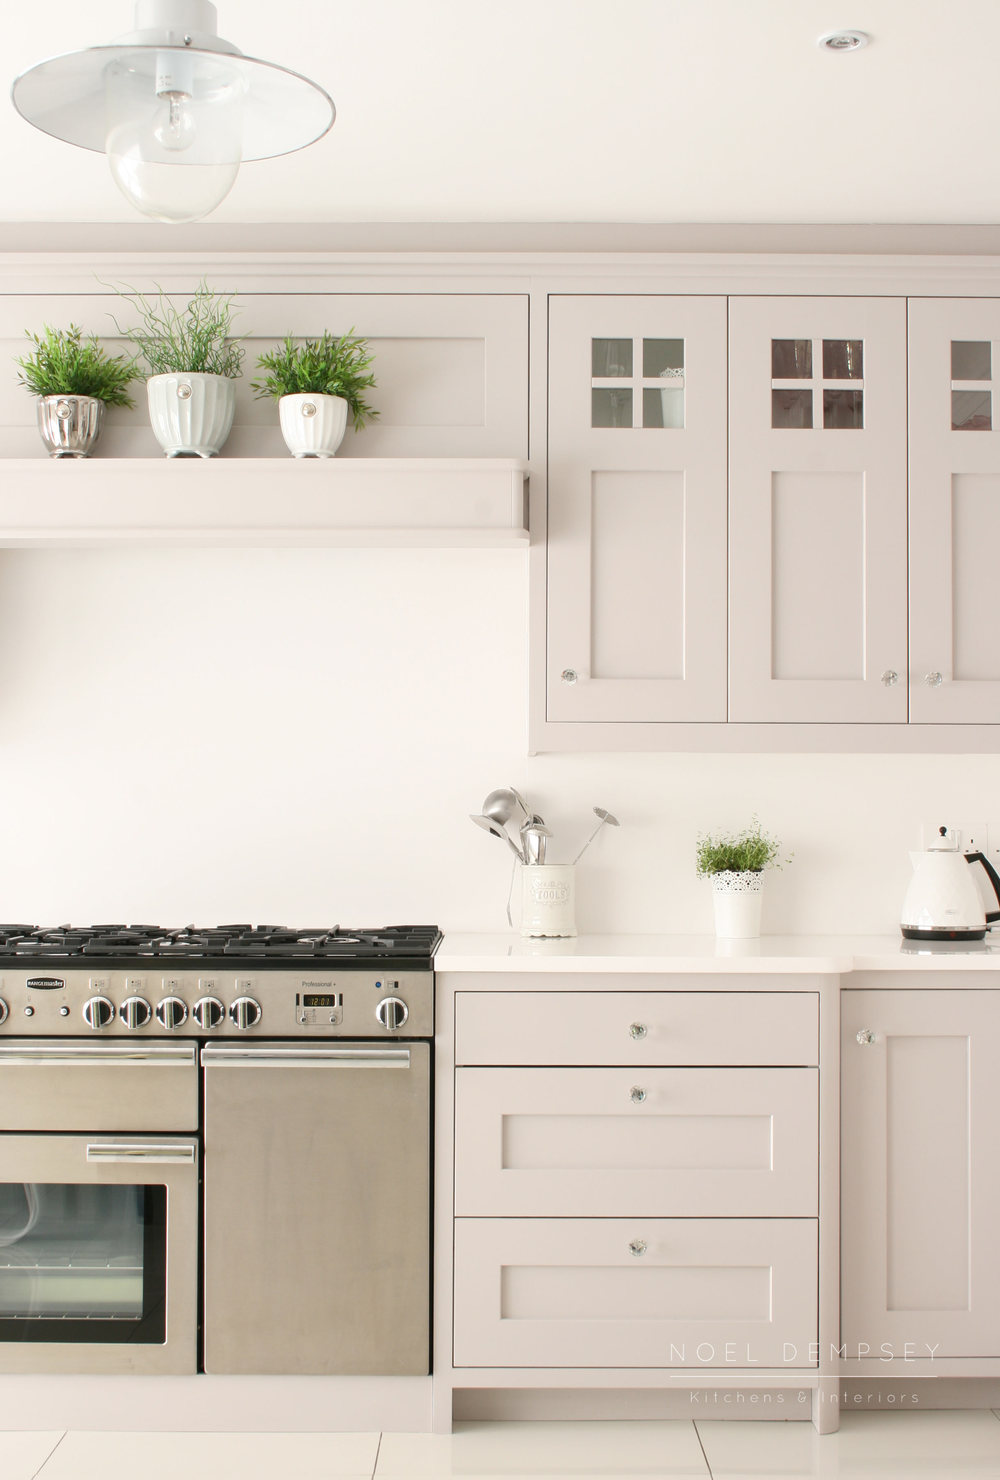 Gracefield-Inframe-Kitchen-4.jpg